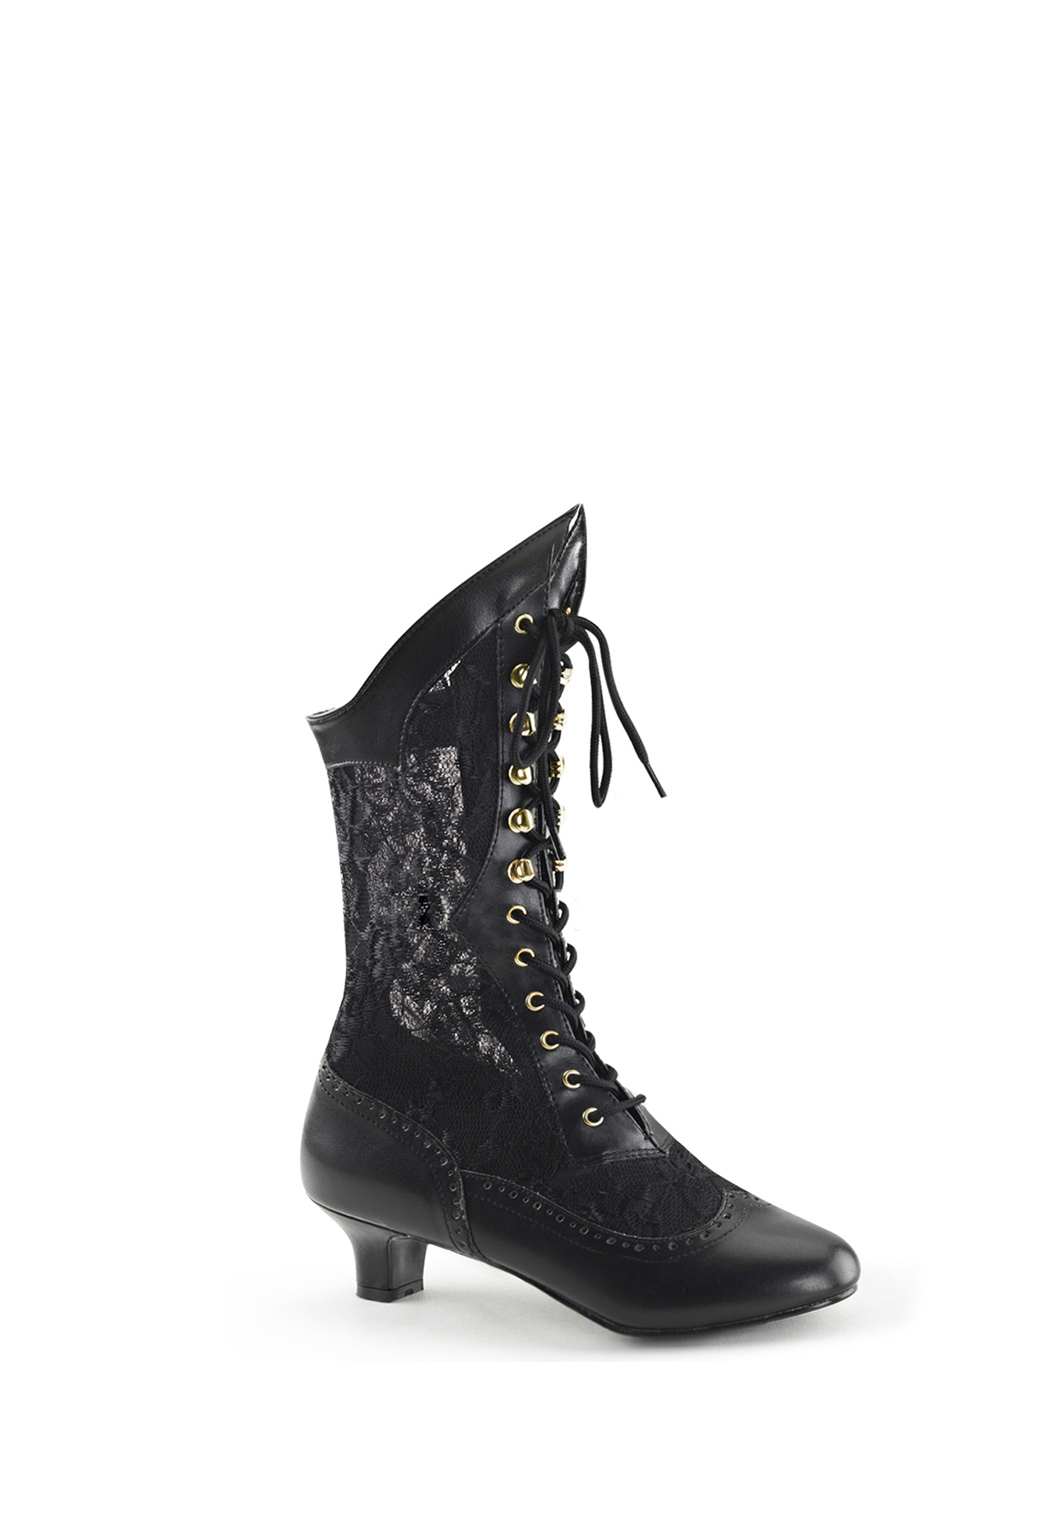 b3fb90debf596 Victorian Boots from Recollections